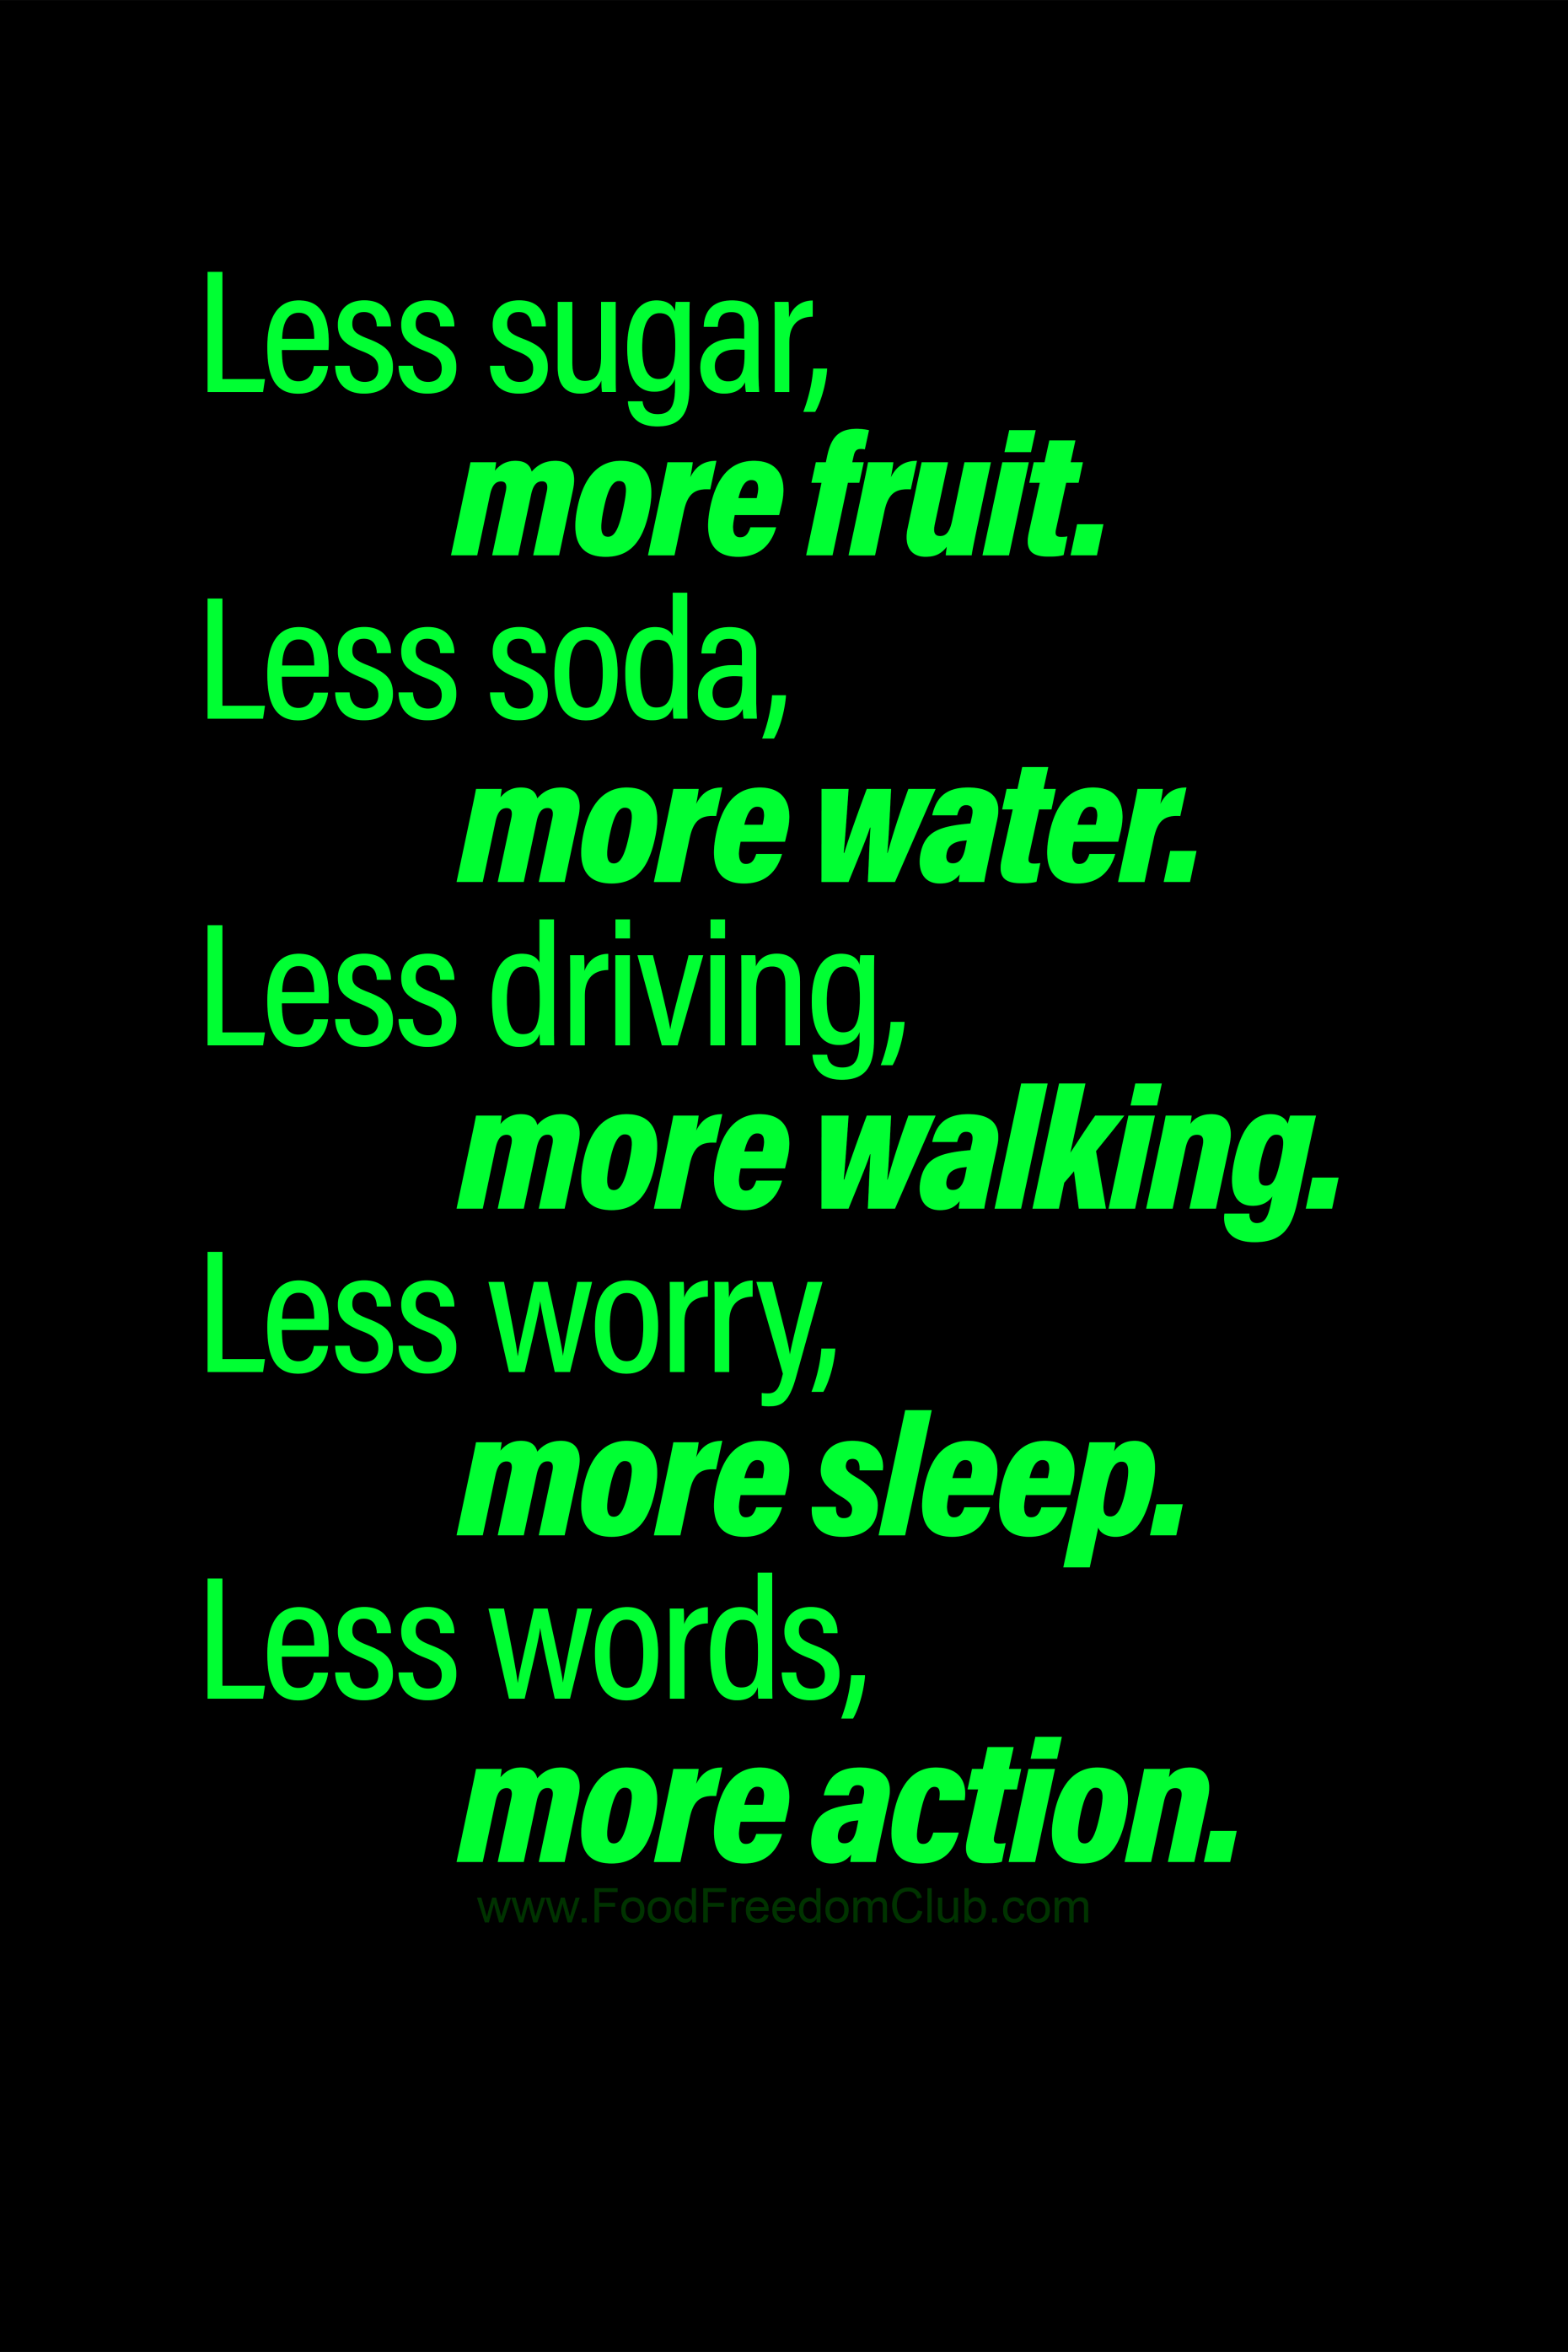 Less sugar, more fruit. Less soda, more water. Less driving, more walking. Less worry, more sleep. L...